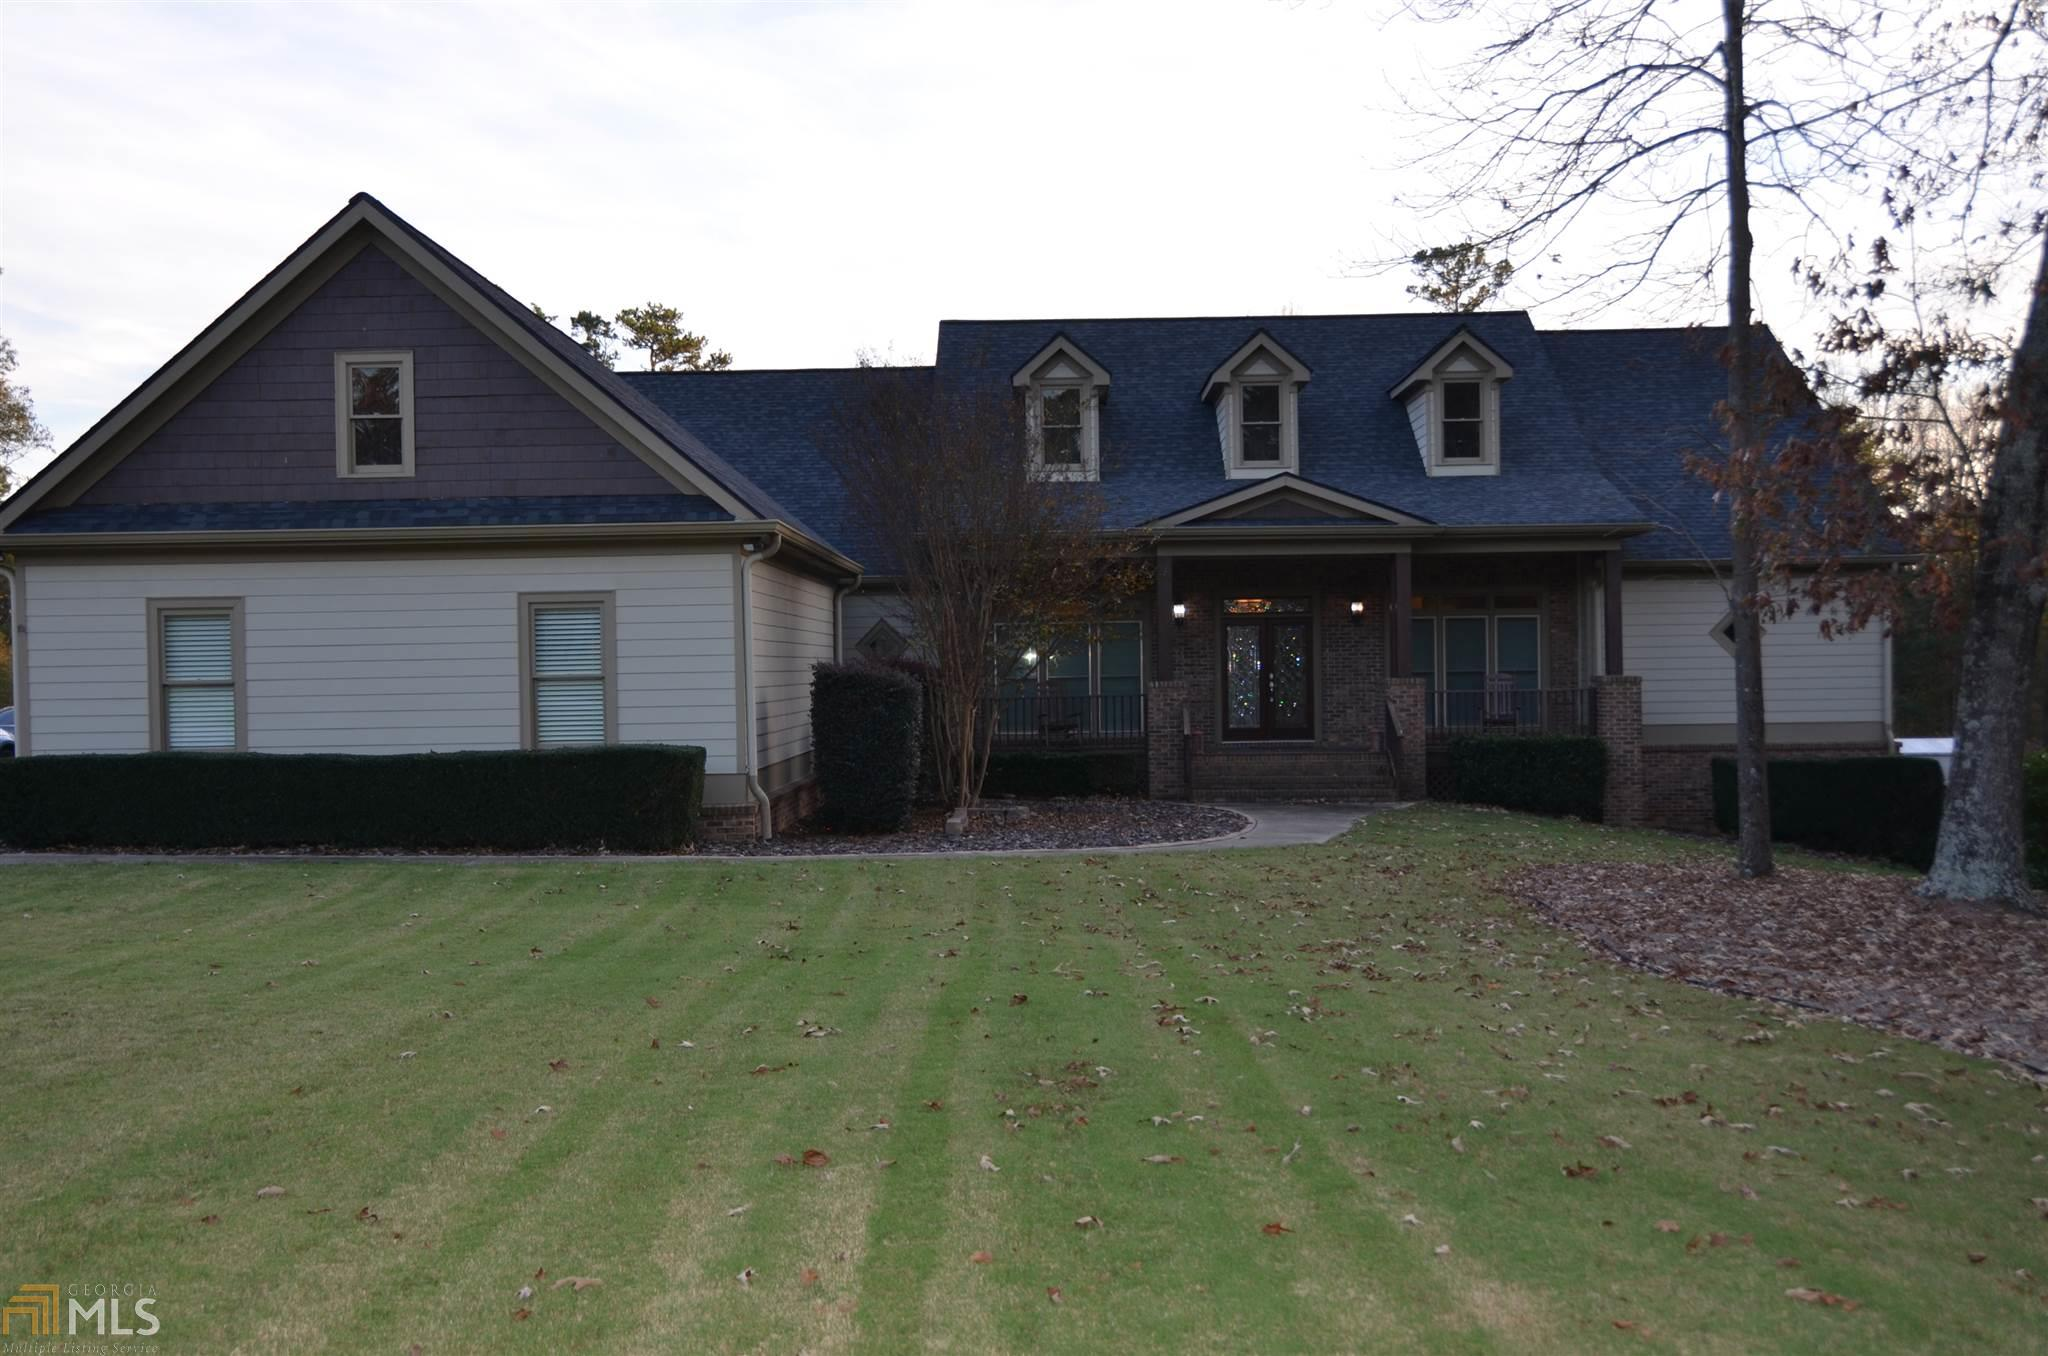 Image for property 7239 Williams Rd, Flowery Branch, GA 30542